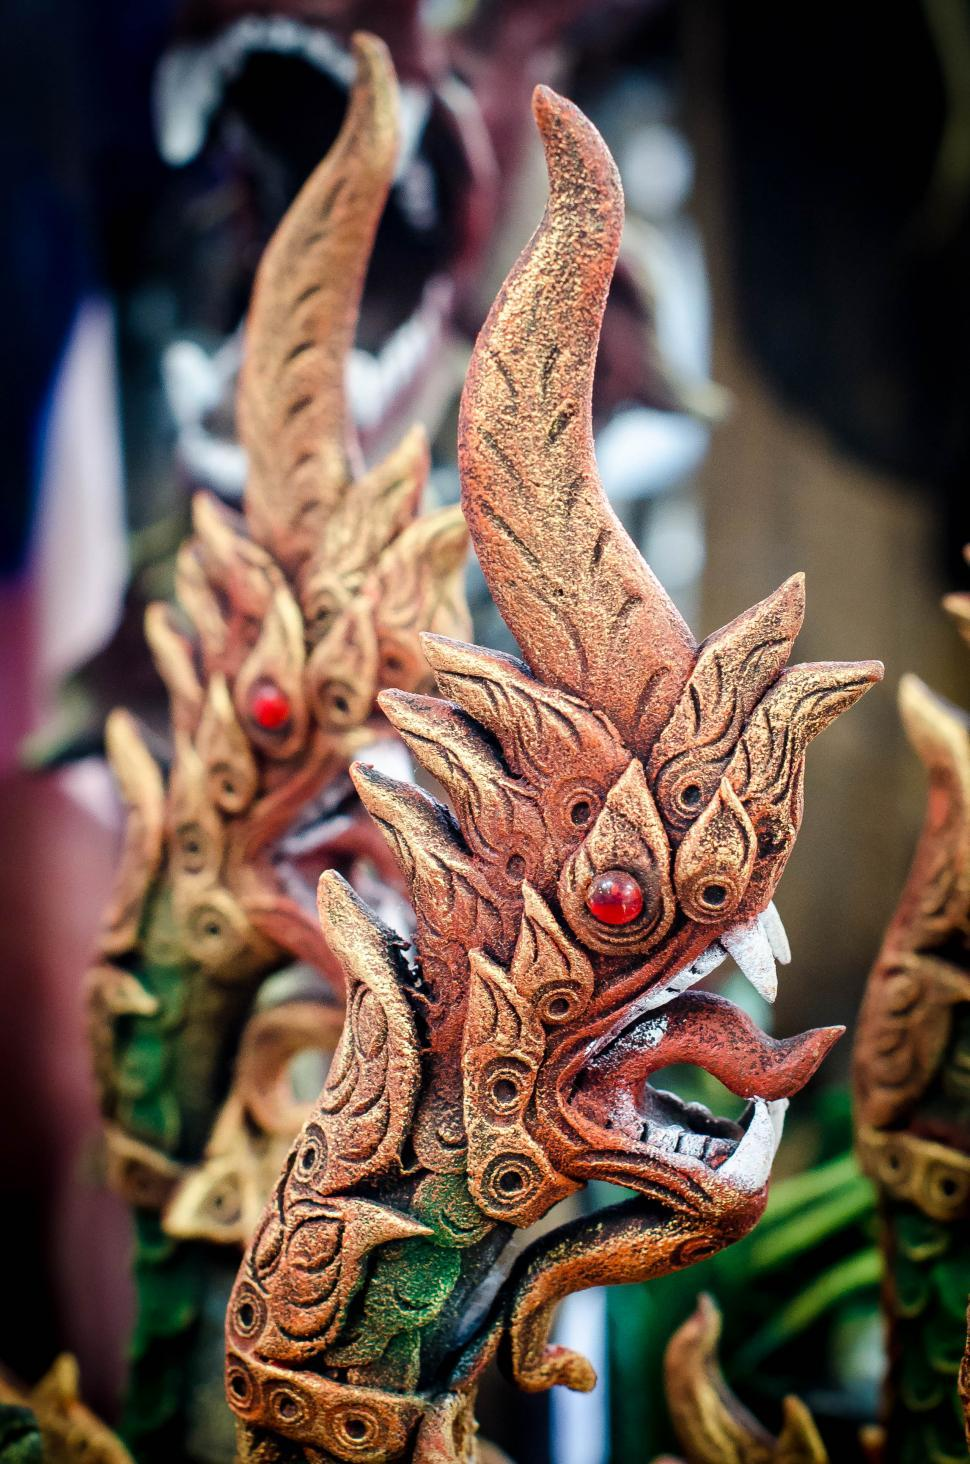 Download Free Stock HD Photo of Snake head a Ya Nark in a Thai's legend  Online